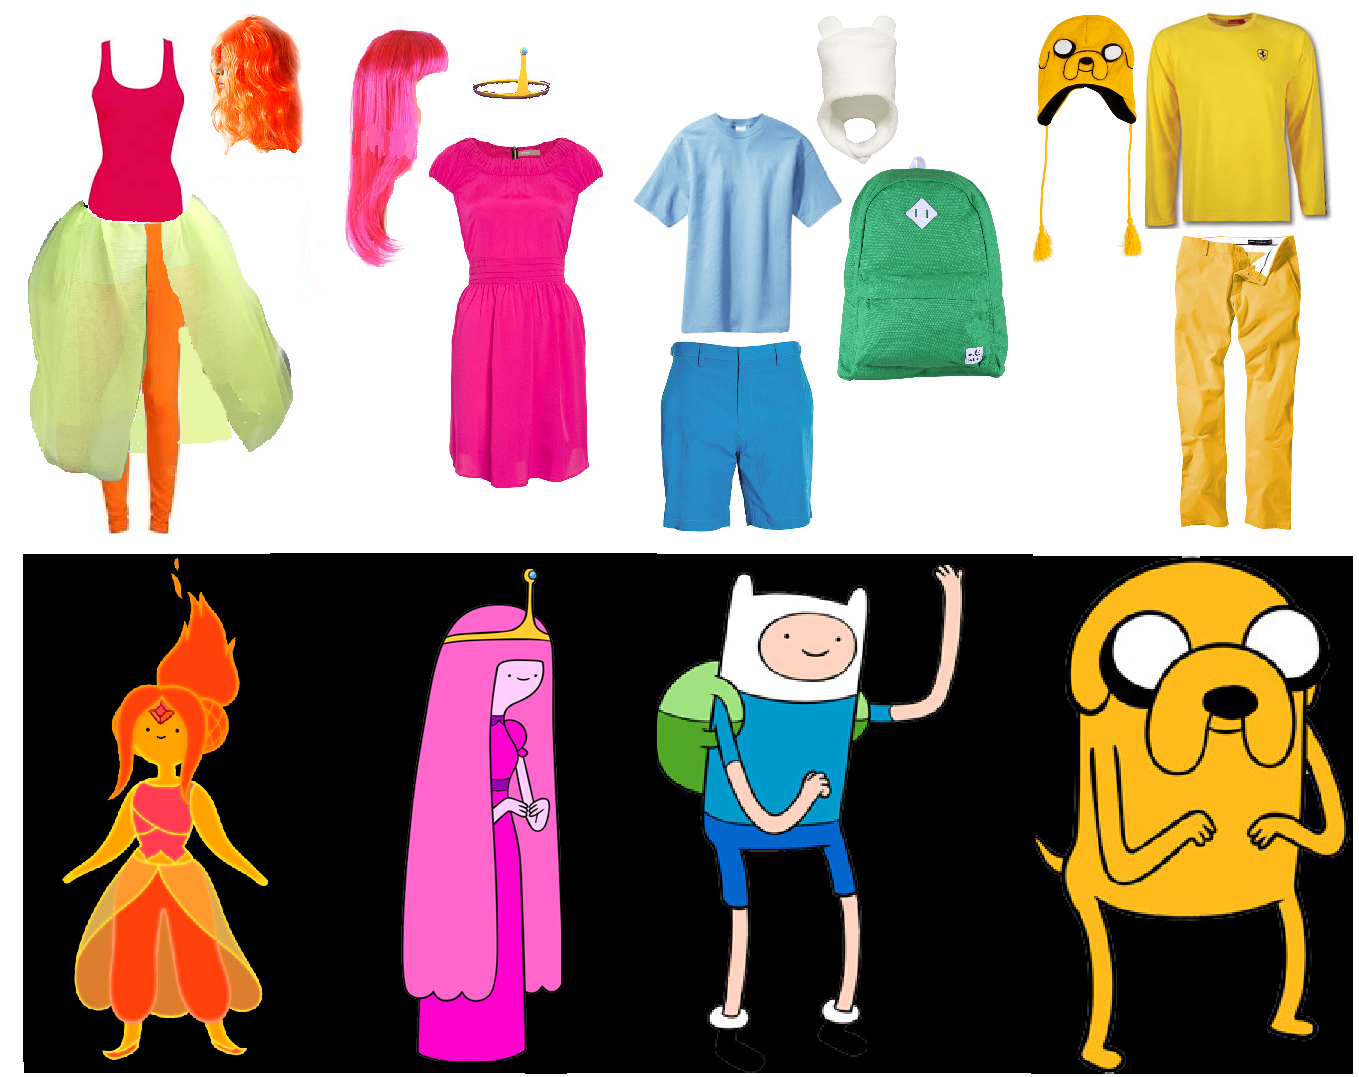 DIY Adventure Time Costumes  sc 1 st  Pinterest & DIY Adventure Time Costumes | kid stuff | Pinterest | Adventure time ...